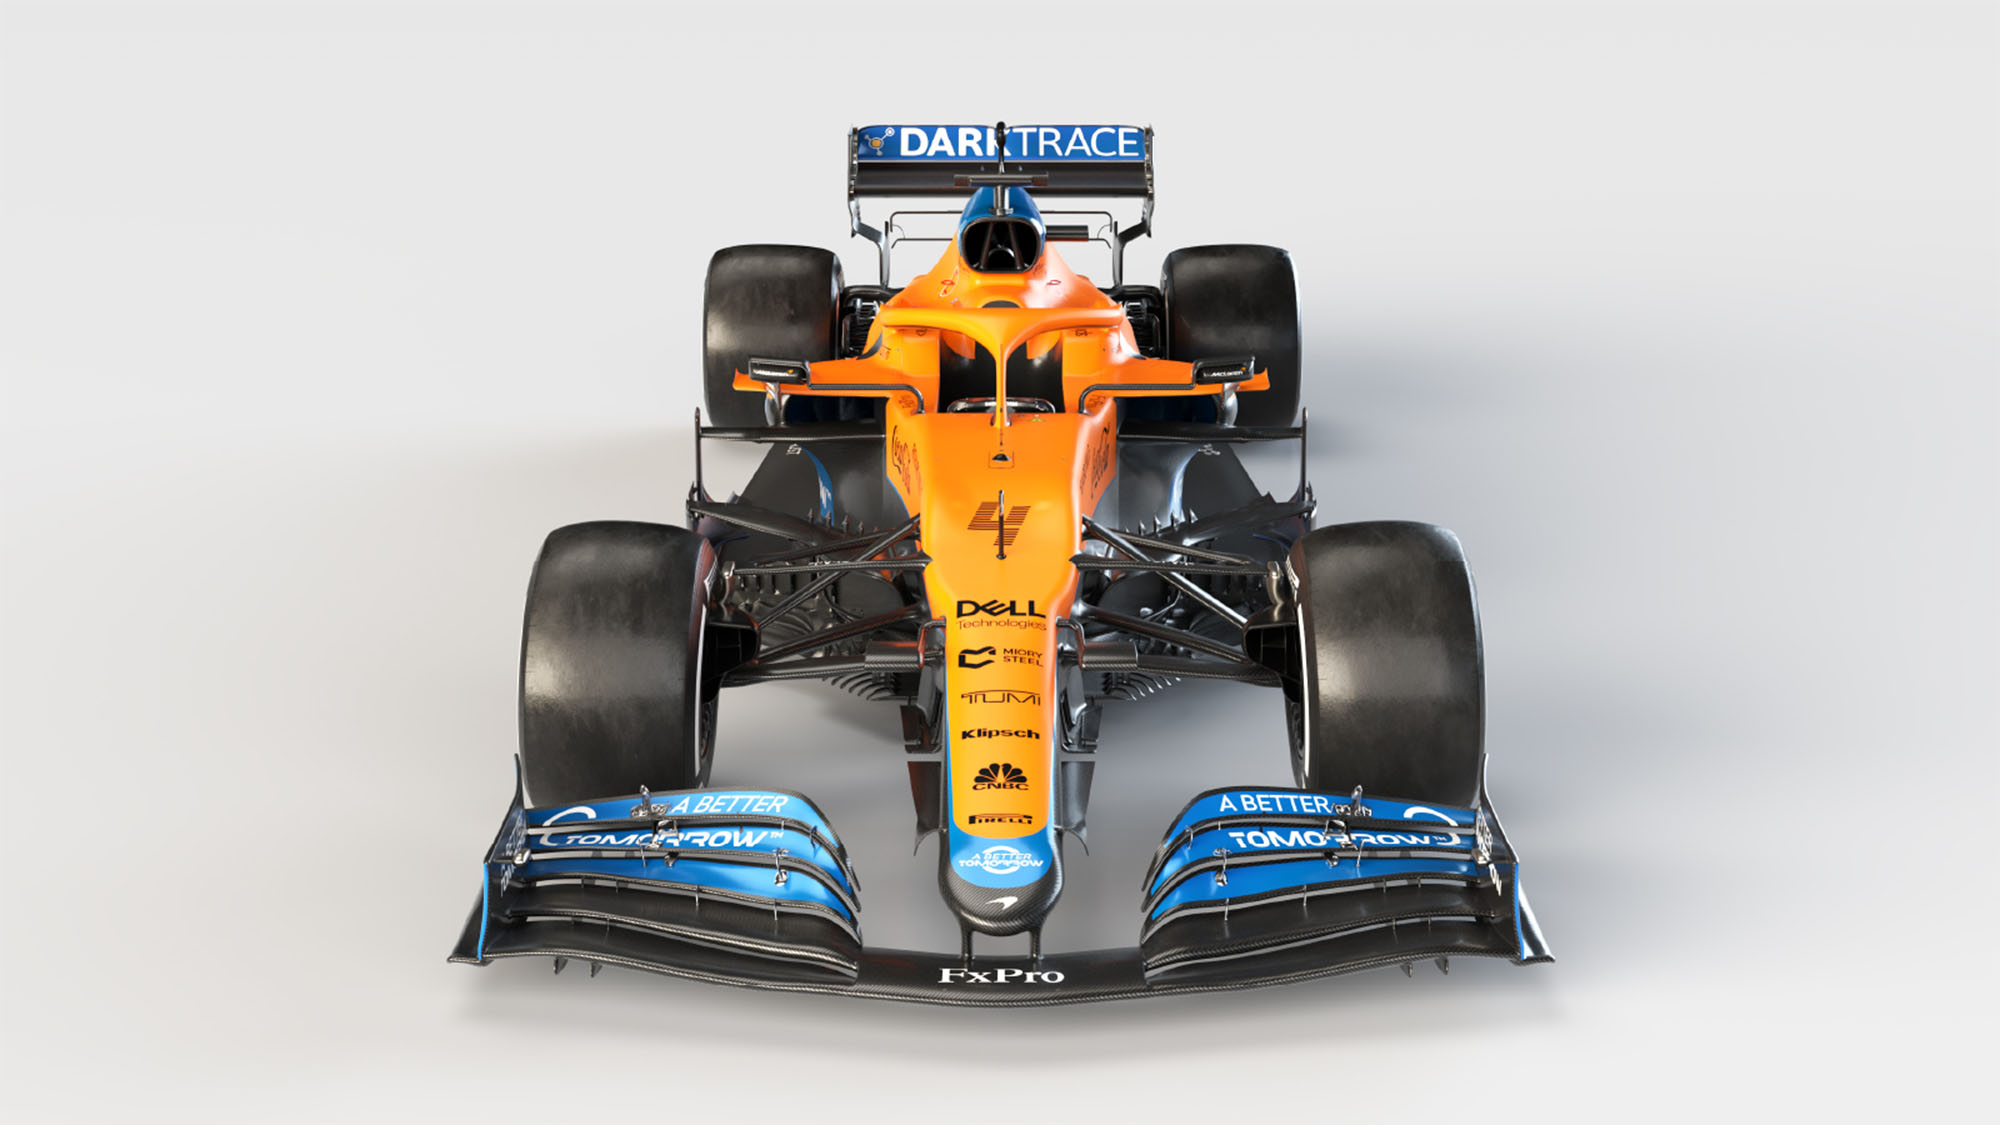 2021 McLaren F1 car and livery revealed